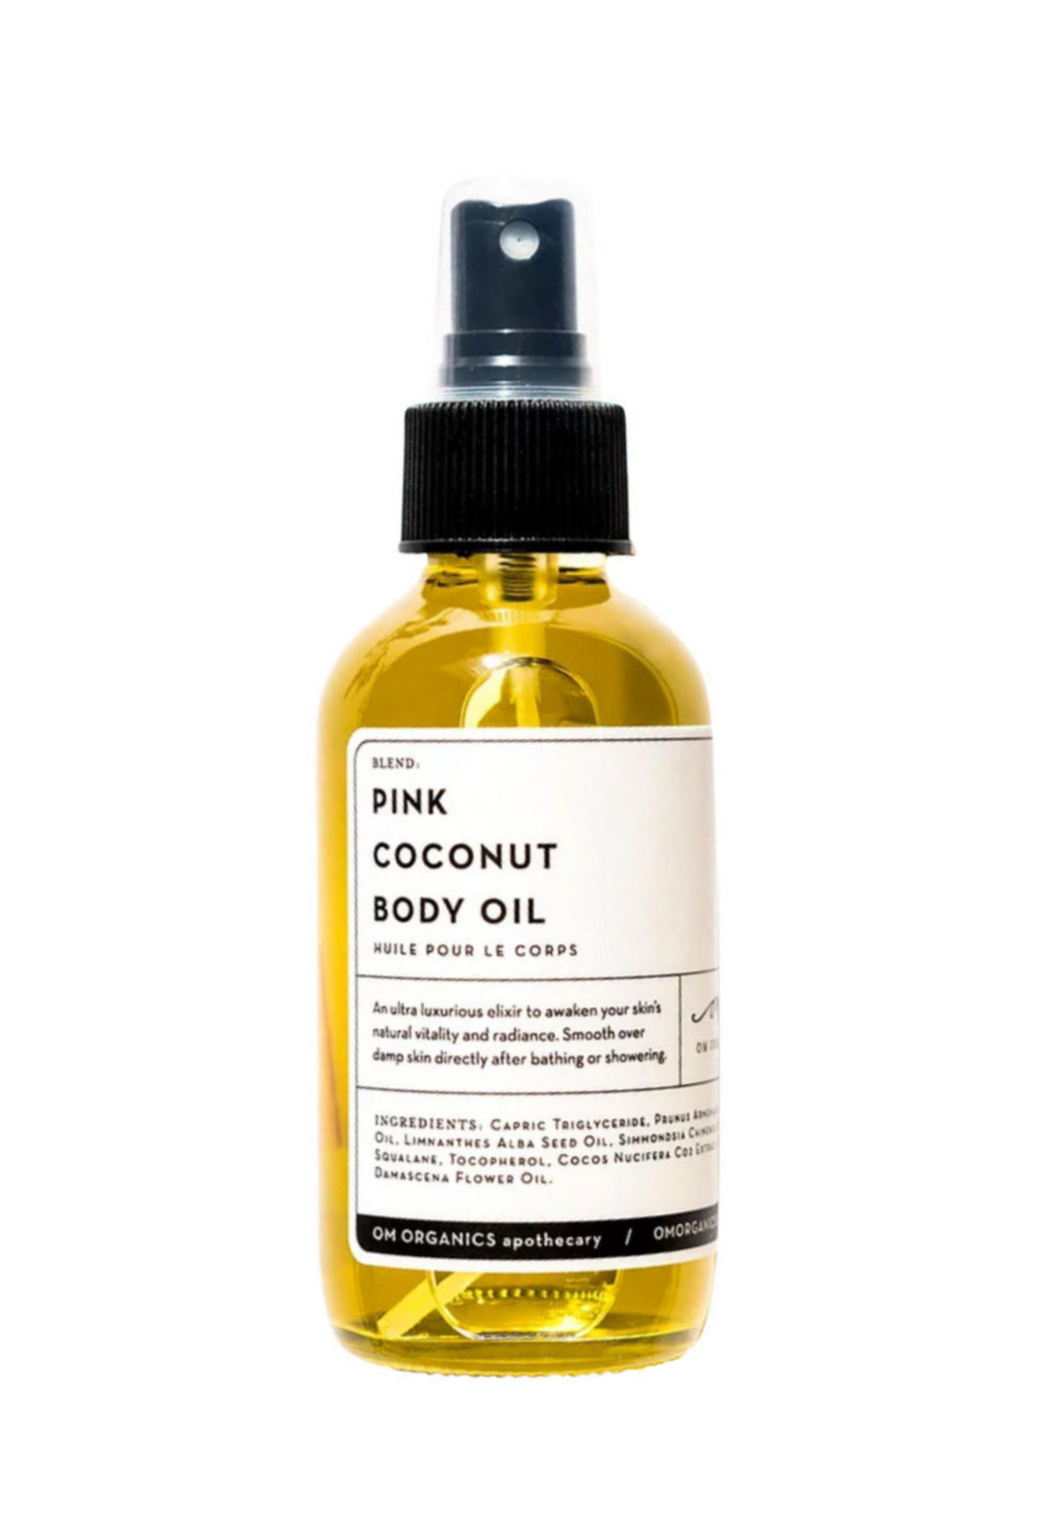 Pink Coconut Body Oil